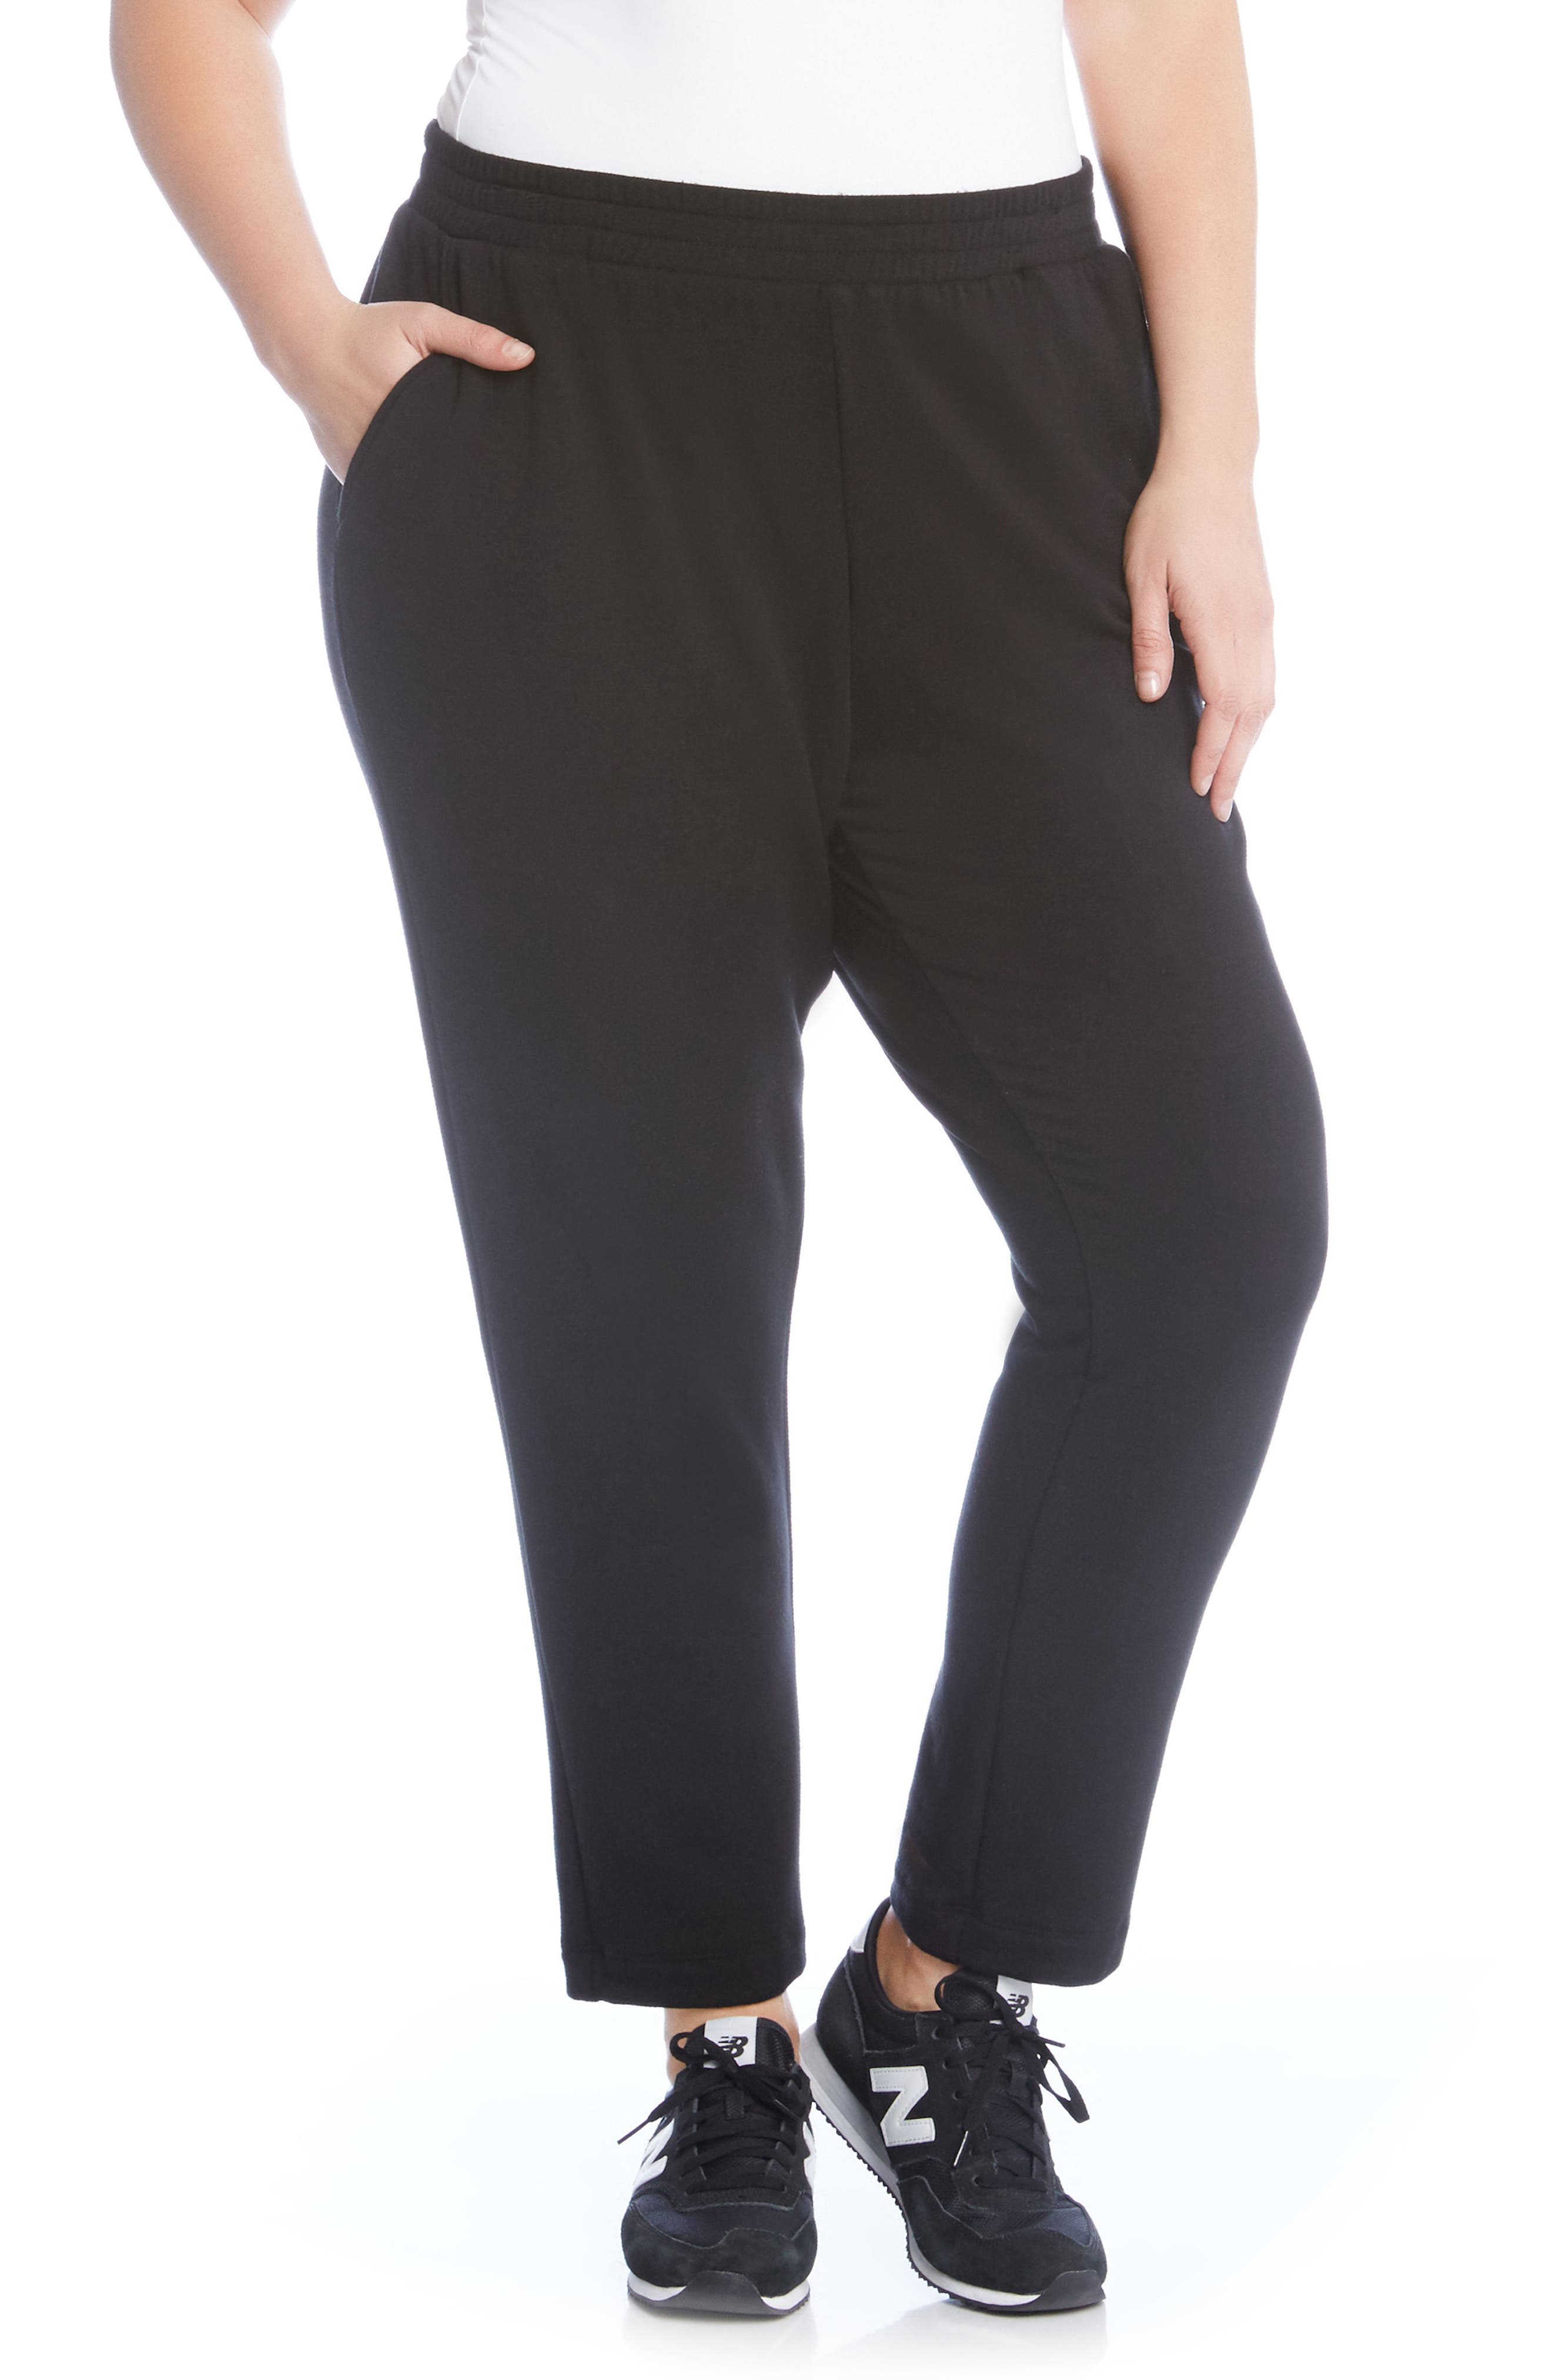 Pull-On Sweatpants,                             Main thumbnail 1, color,                             001